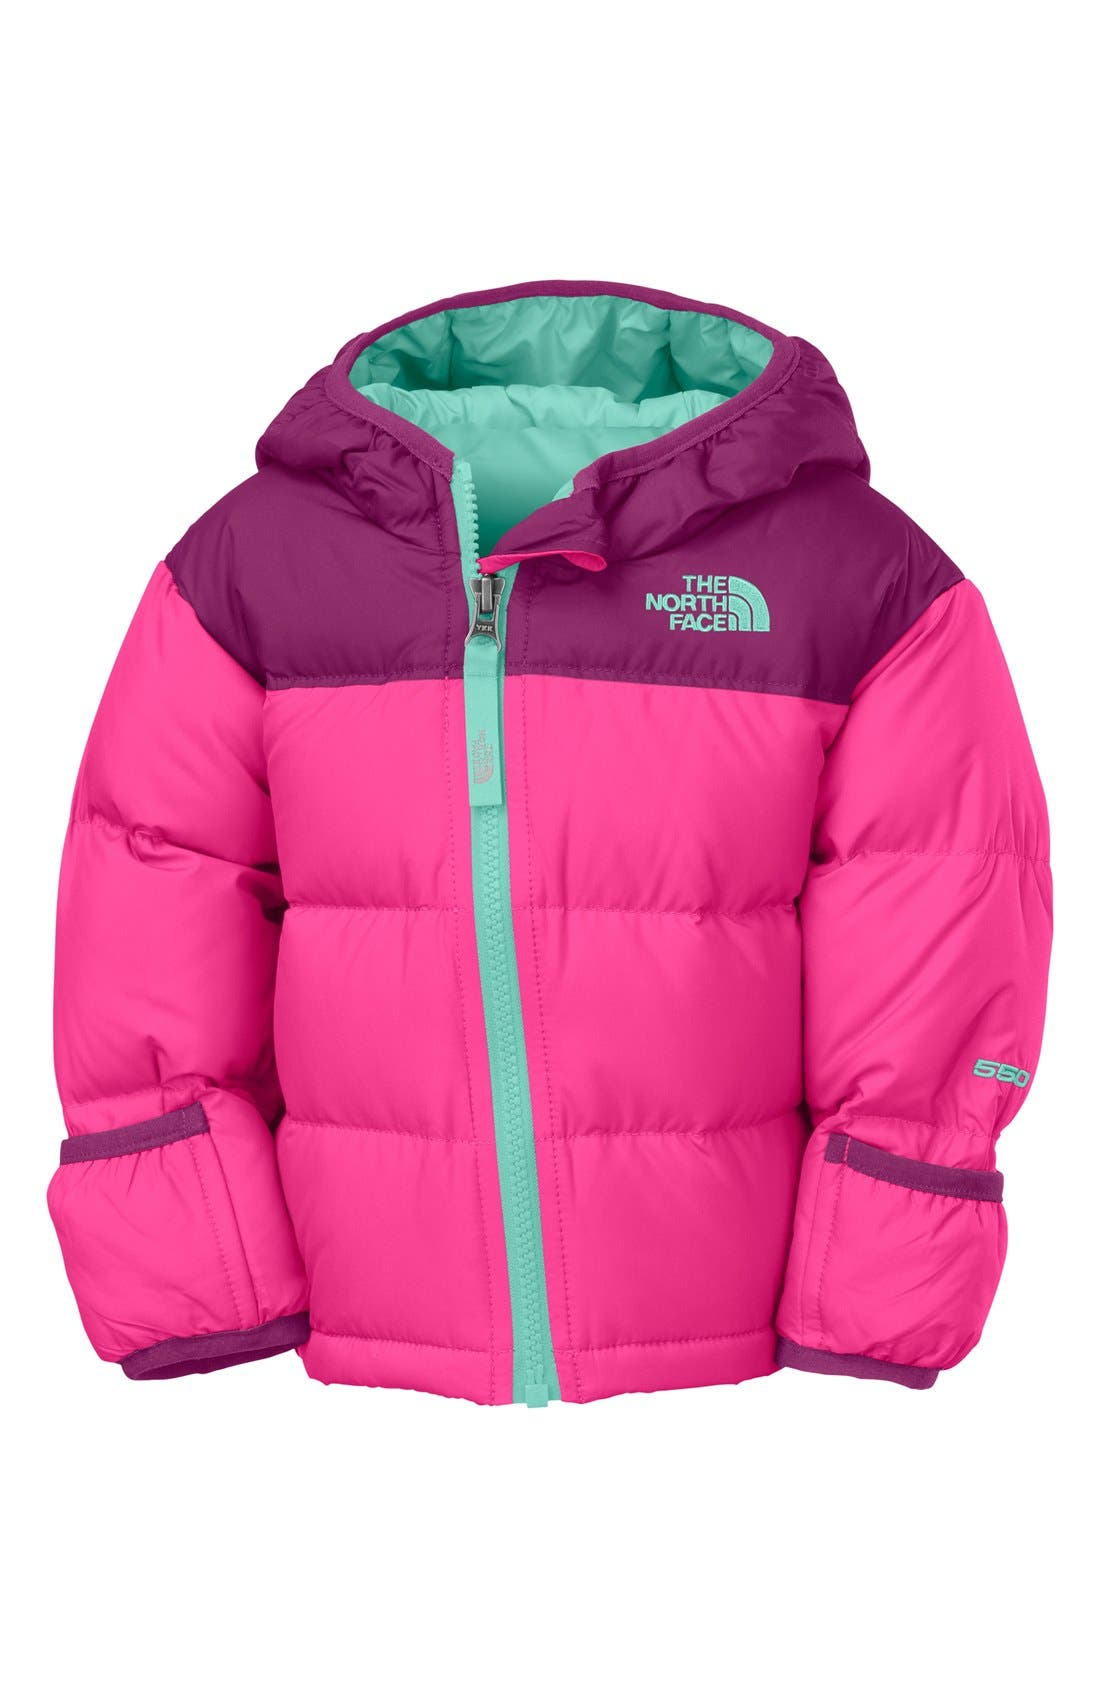 Alternate Image 1 Selected - The North Face 'Nuptse' Hooded Down Jacket (Baby Girls)